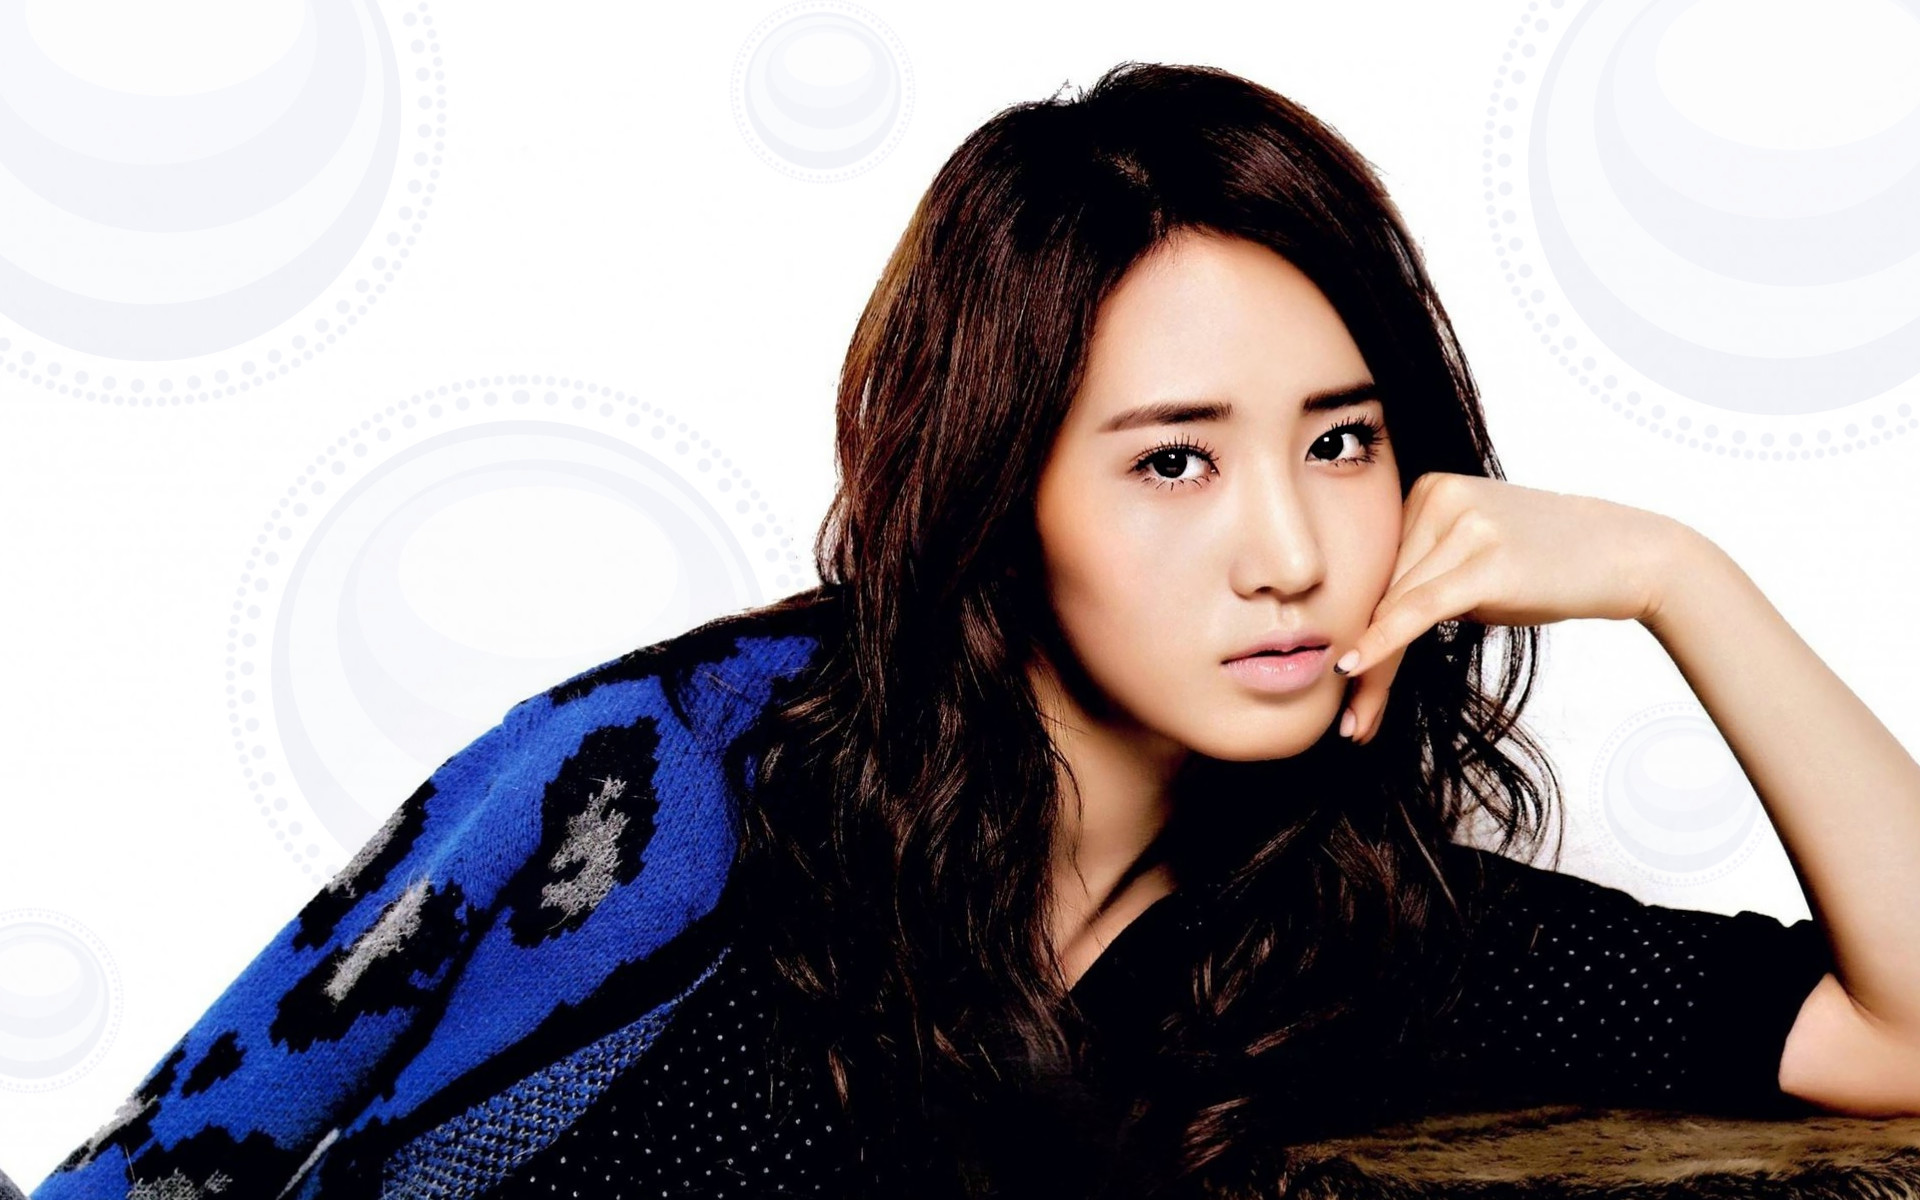 yuri kwon yuri photo fanpop video bokep ngentot